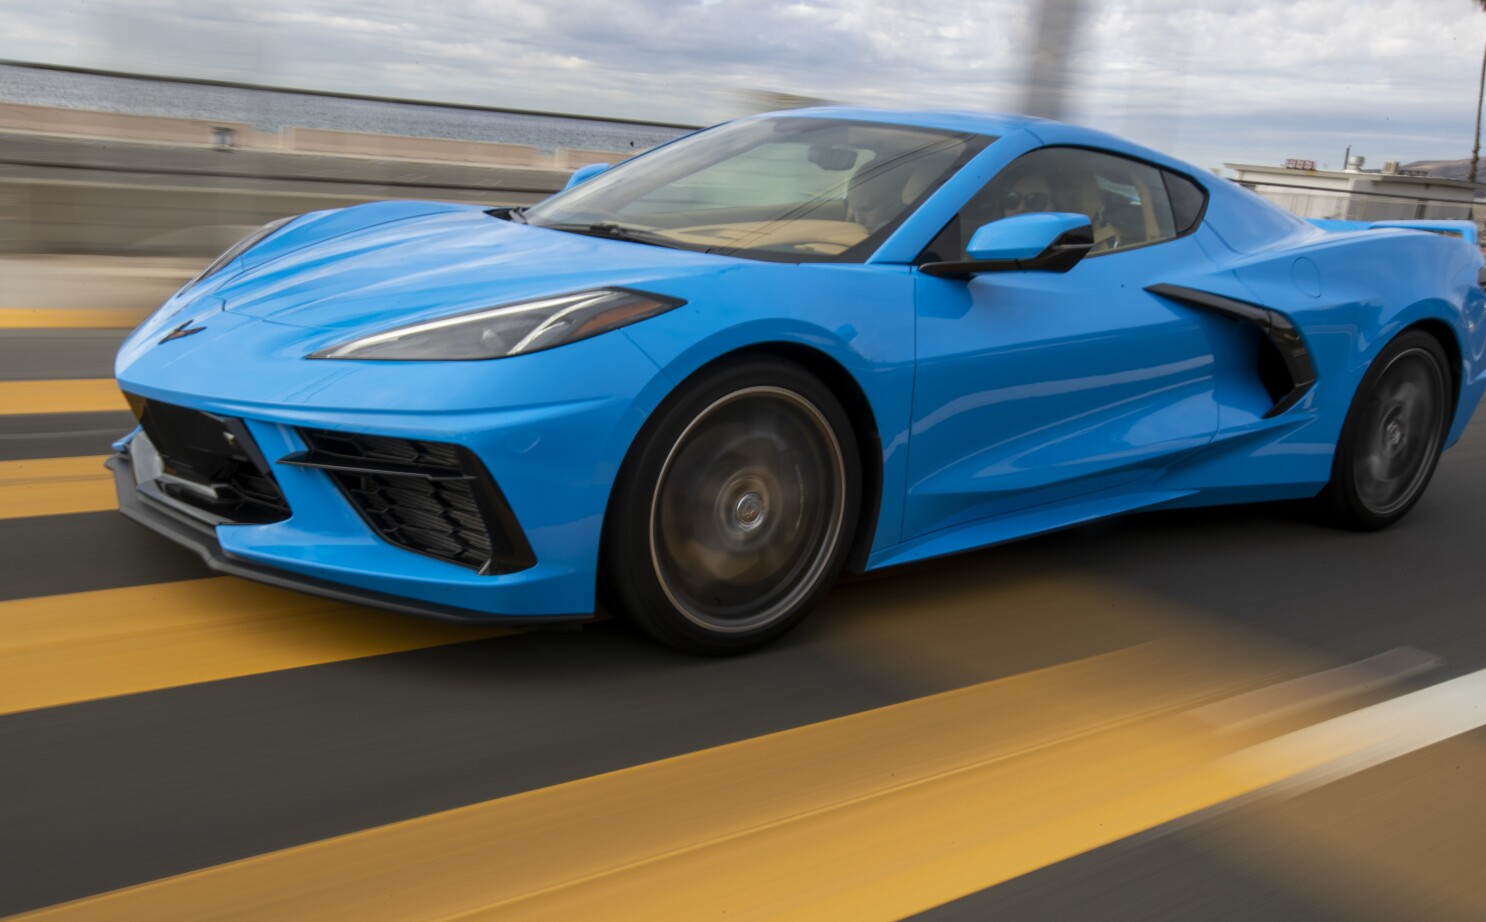 2020 Corvette Review Is The Midengine Model Too Good To Be True Los Angeles Times